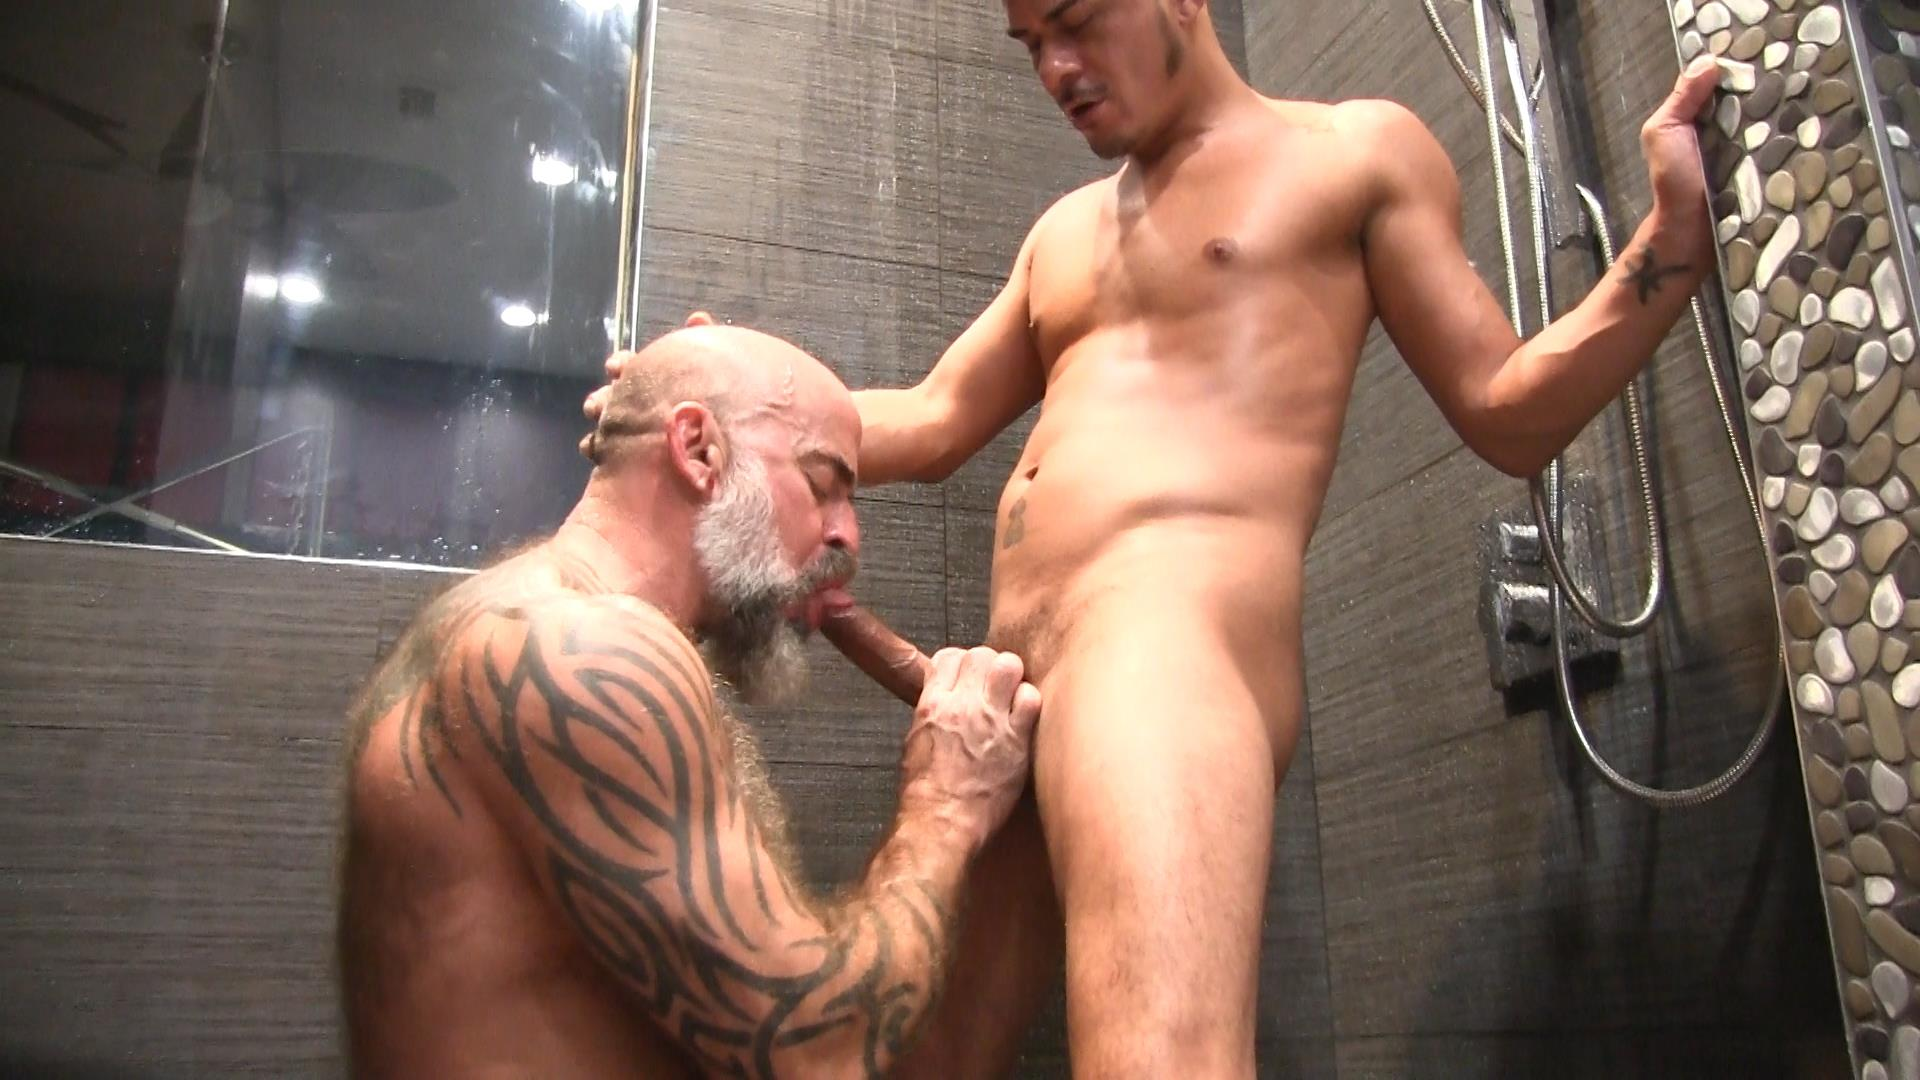 Victor-Cody-XXX-Nate-Pierce-and-Cesar-Xes-Bareback-Bathhouse-Sex-07 Getting Fucked By A Hairy Daddy In The Bathhouse Shower